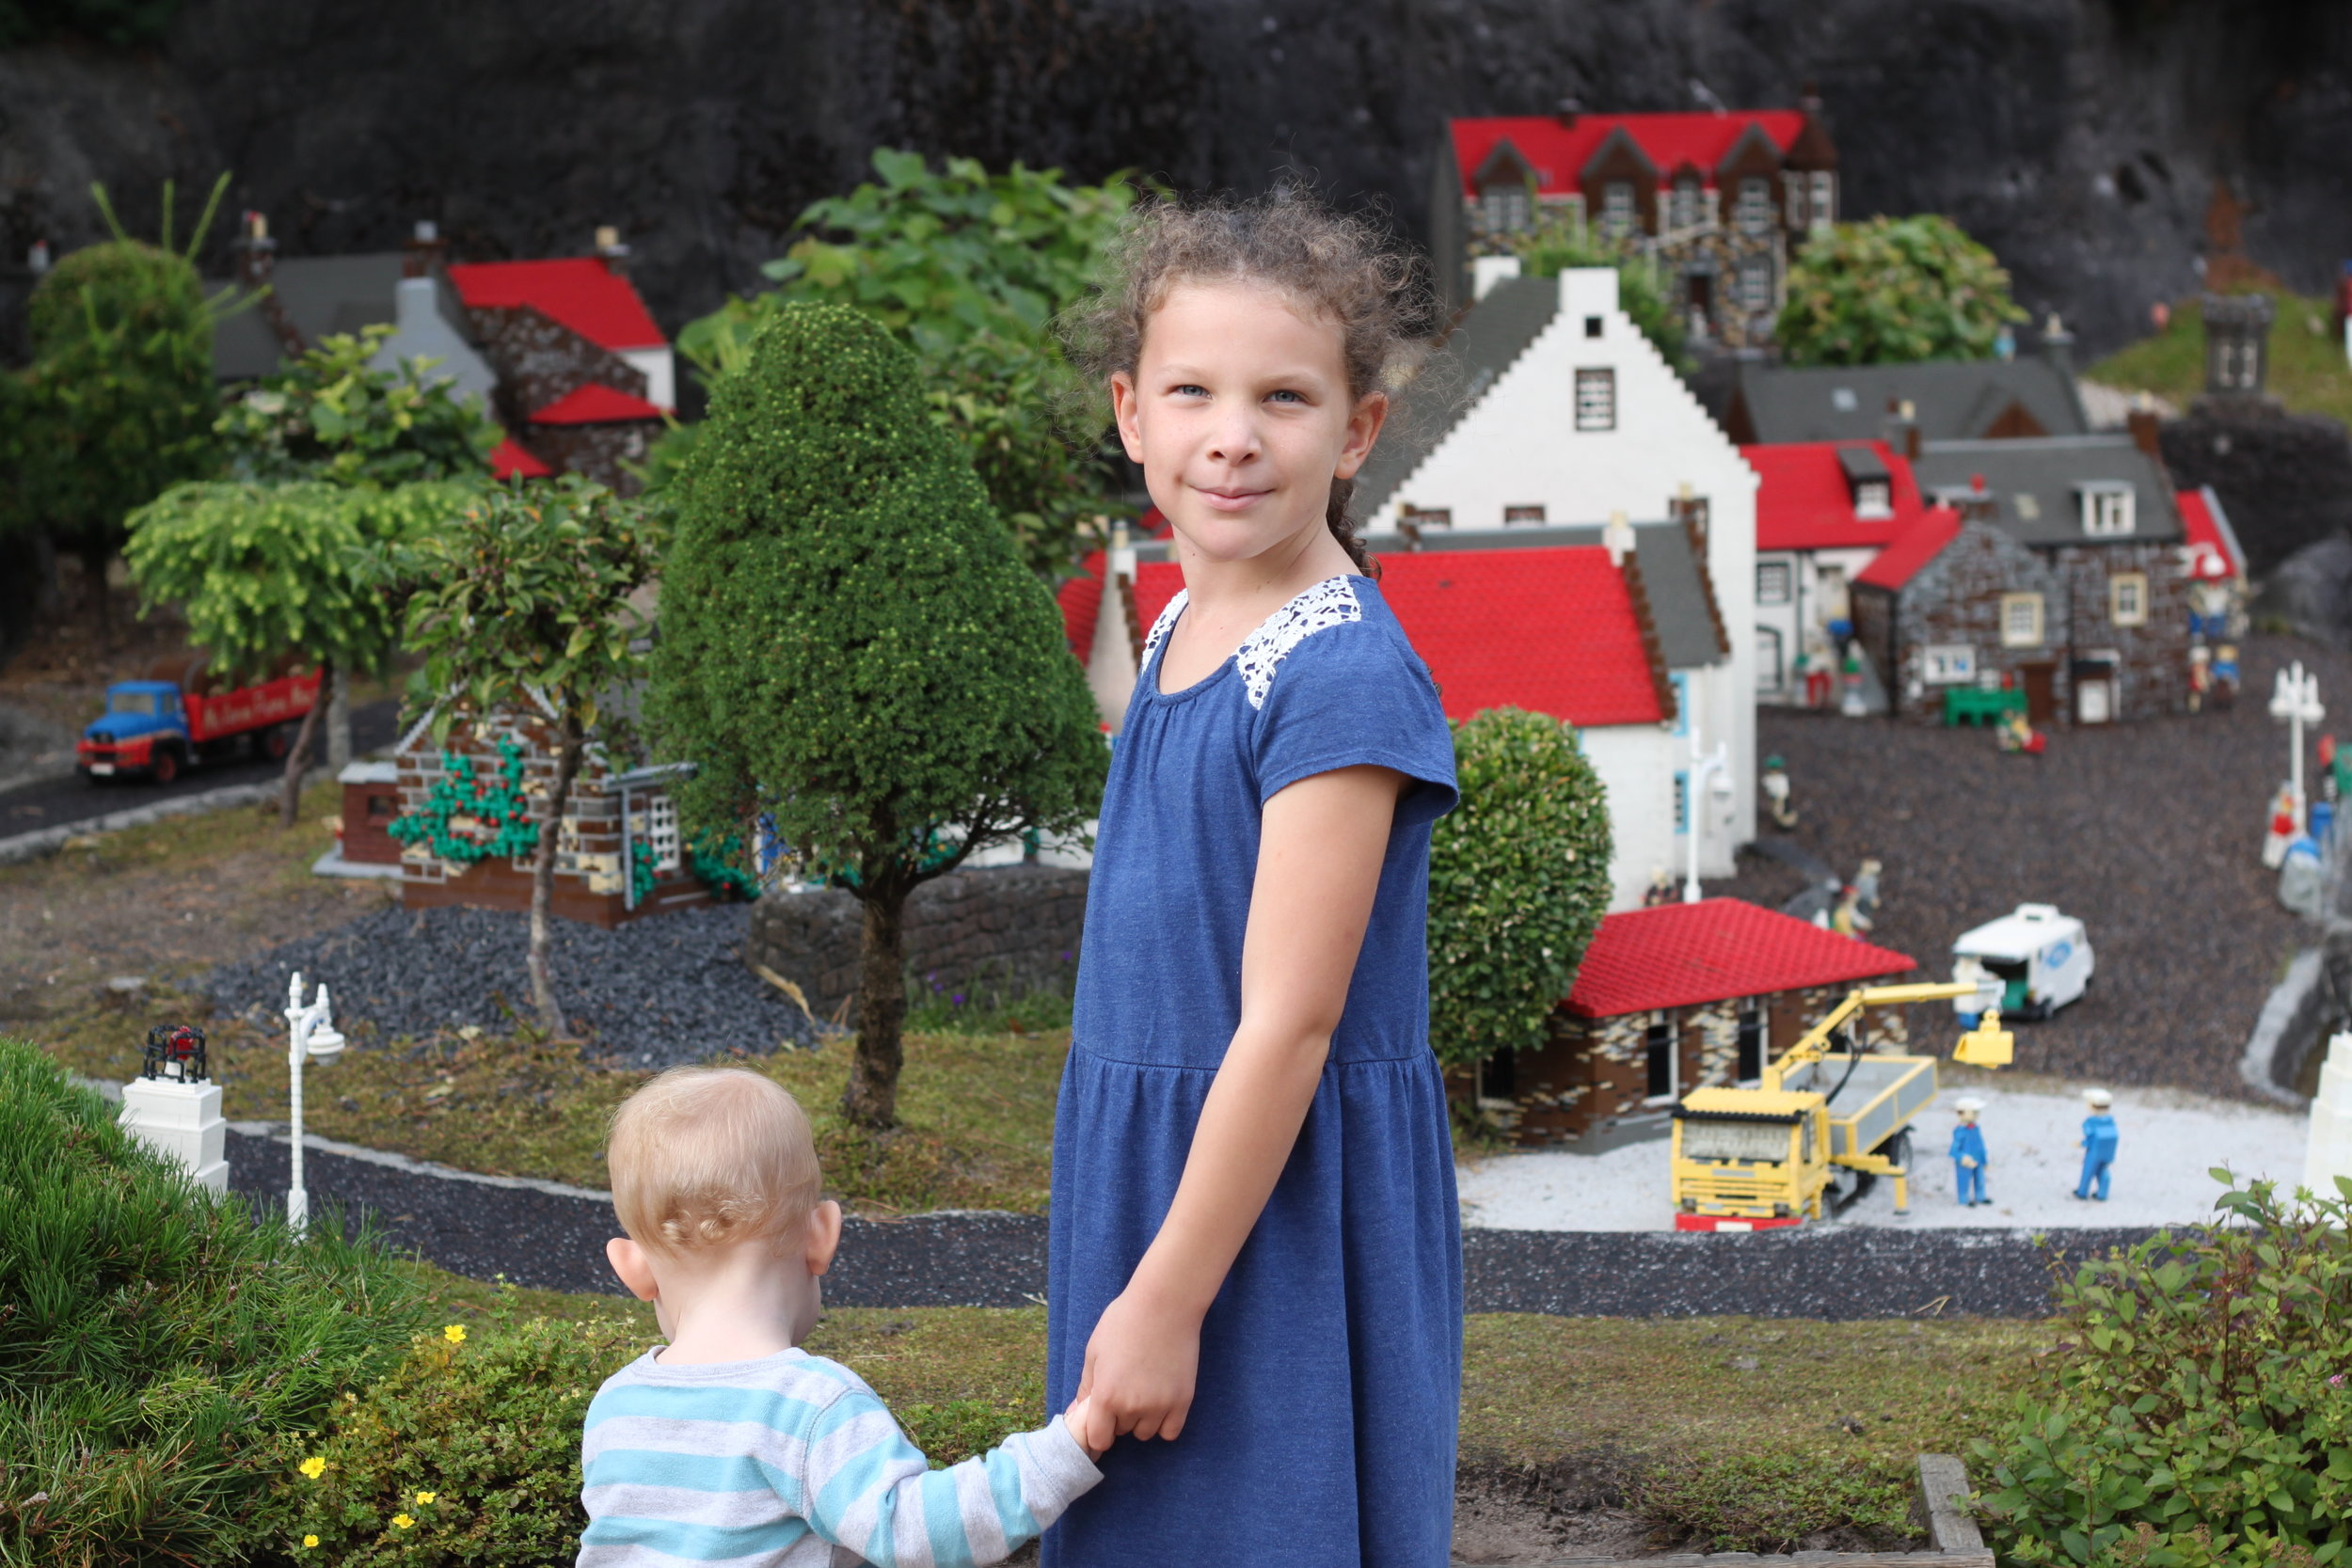 Natasha and Lincoln at Legoland, in Denmark.